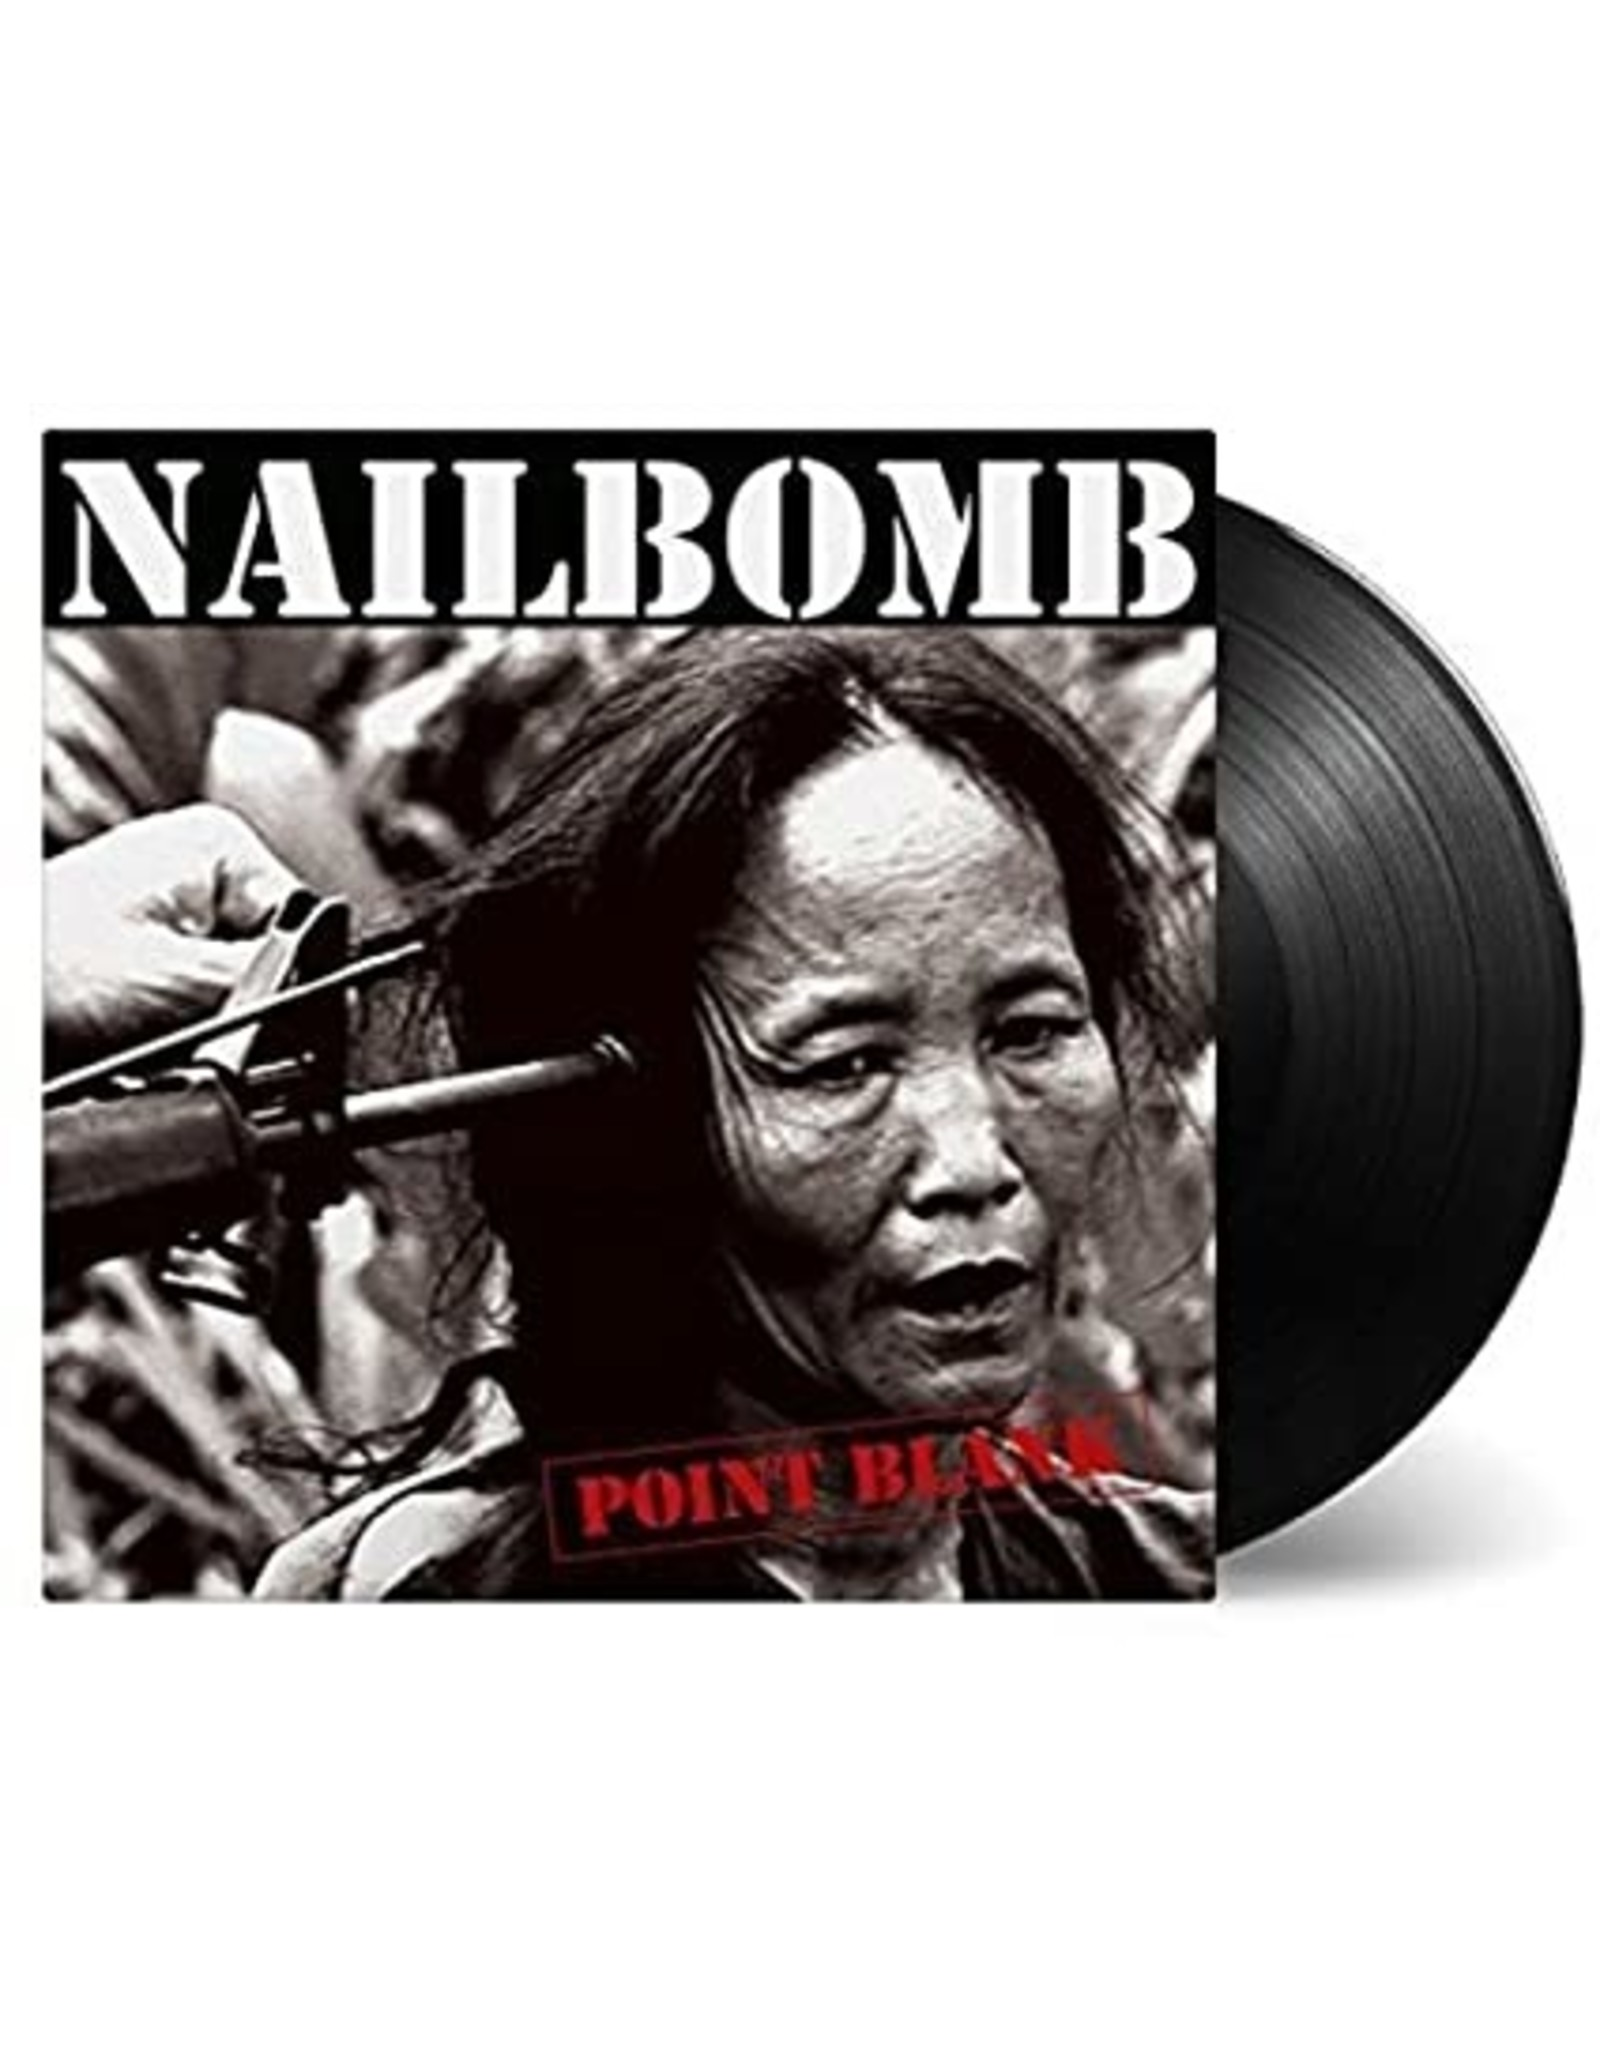 New Vinyl Nailbomb - Point Blank LP